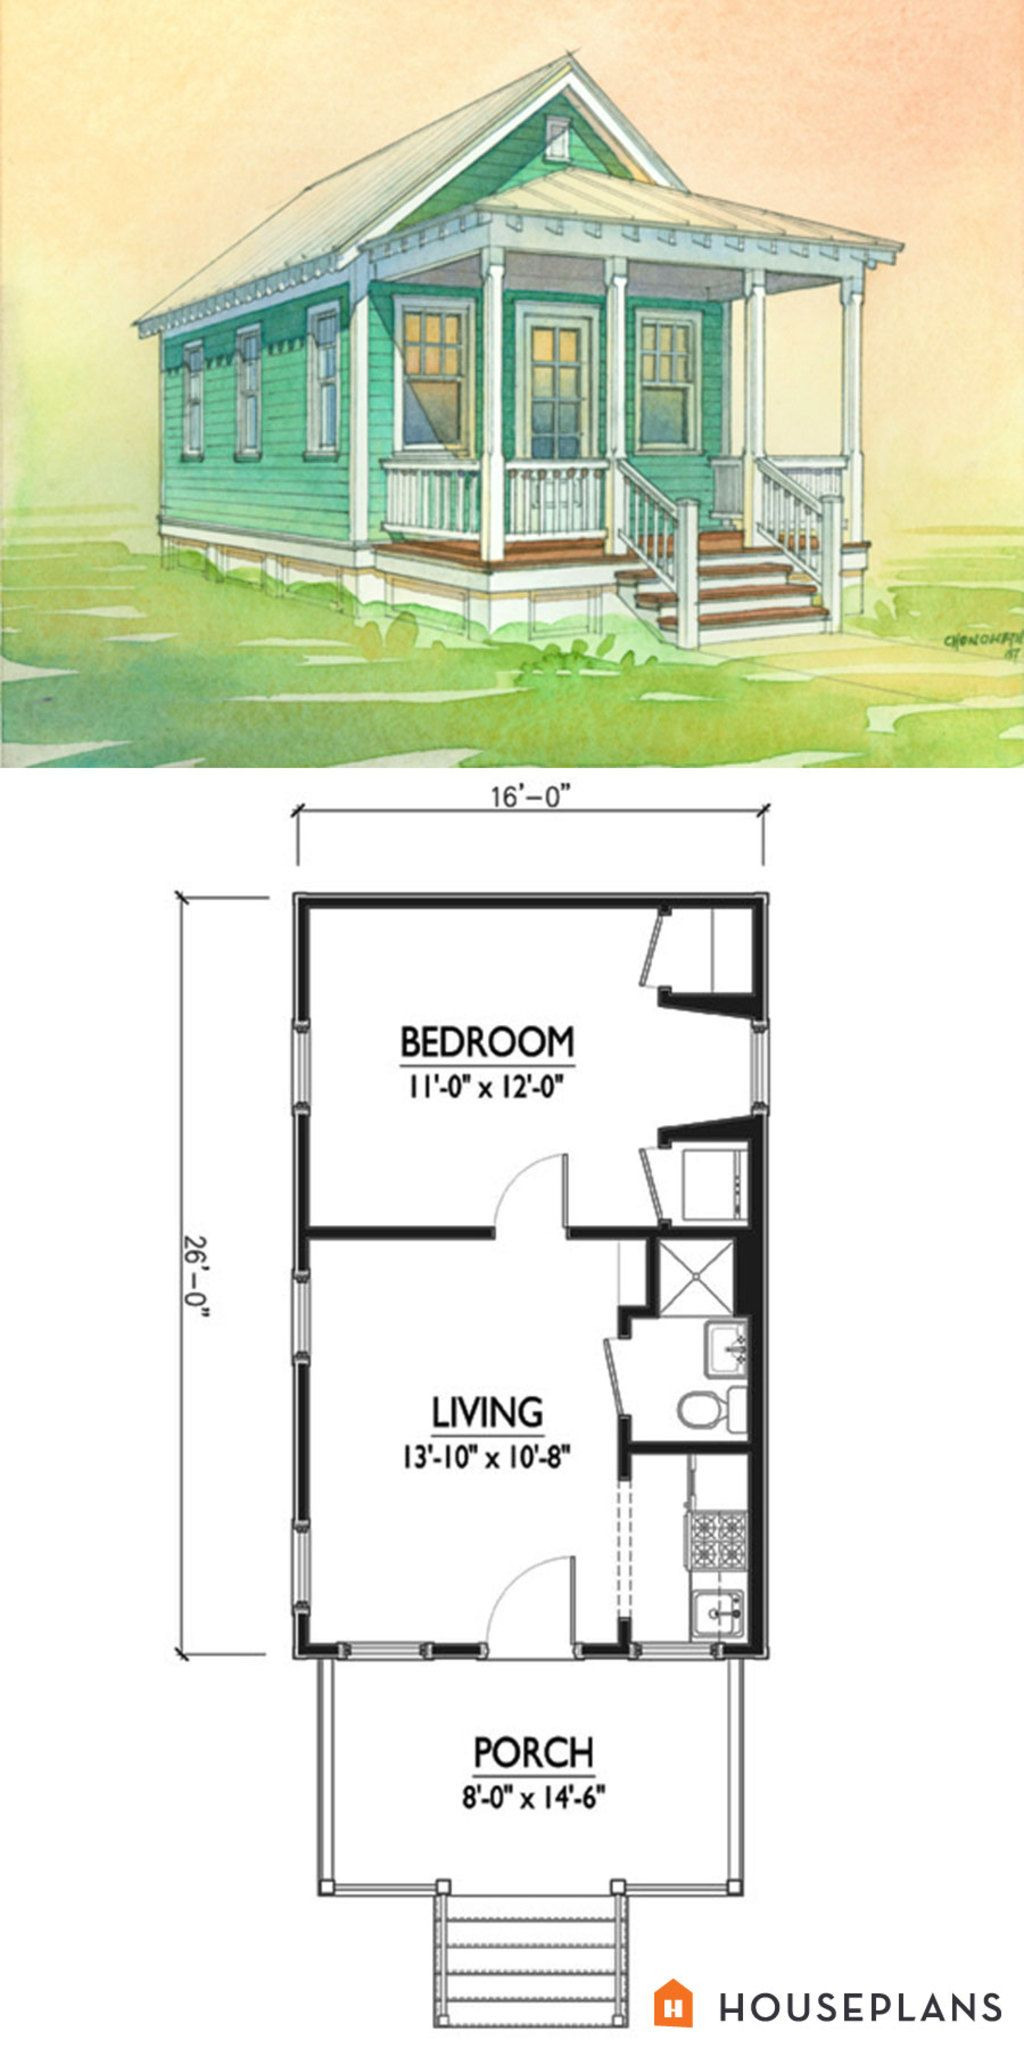 Guest House Floor Plans Awesome Cottage Style House Plan 1 Beds 1 Baths 416 Sq Ft Plan